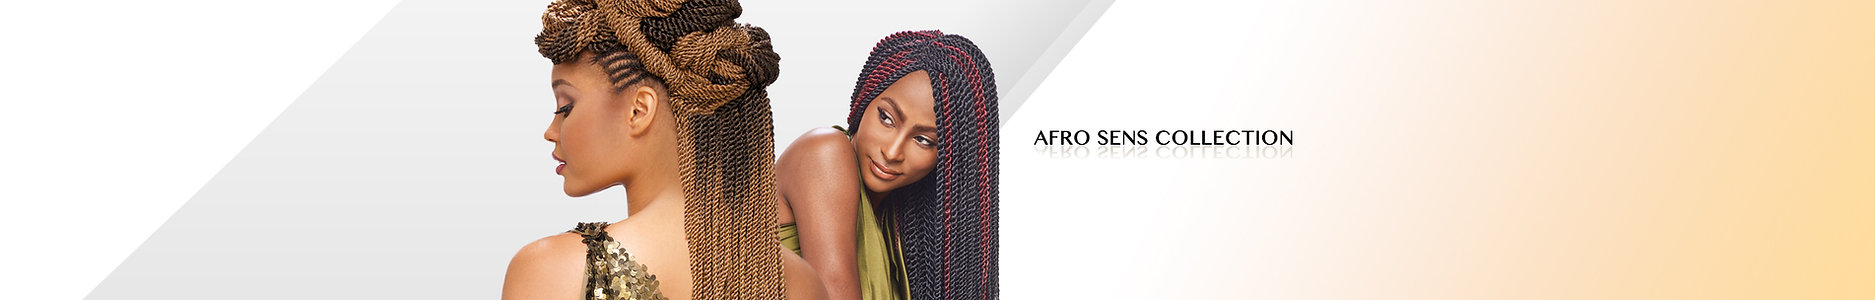 AFRO-SENS-COLLECTION.jpg